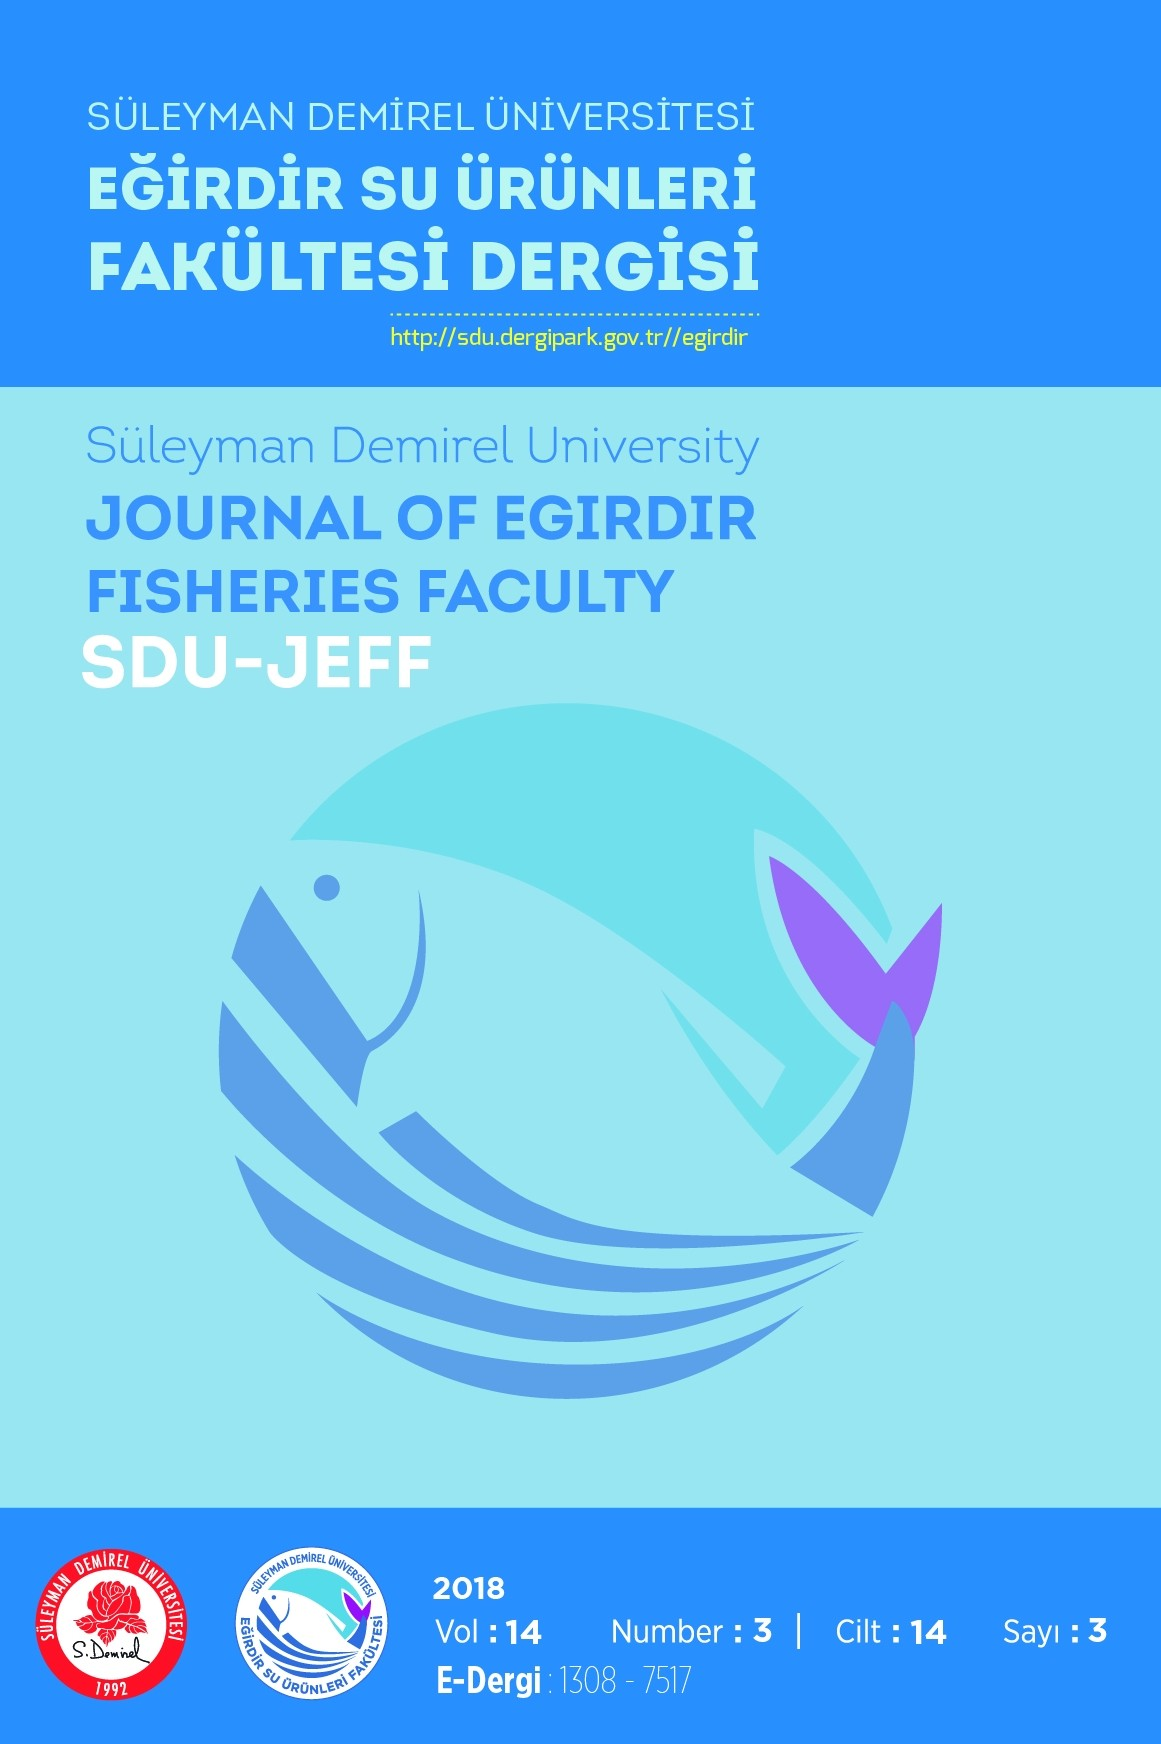 Süleyman Demirel University Journal of Eğirdir Fisheries Faculty (SDU-JEFF)